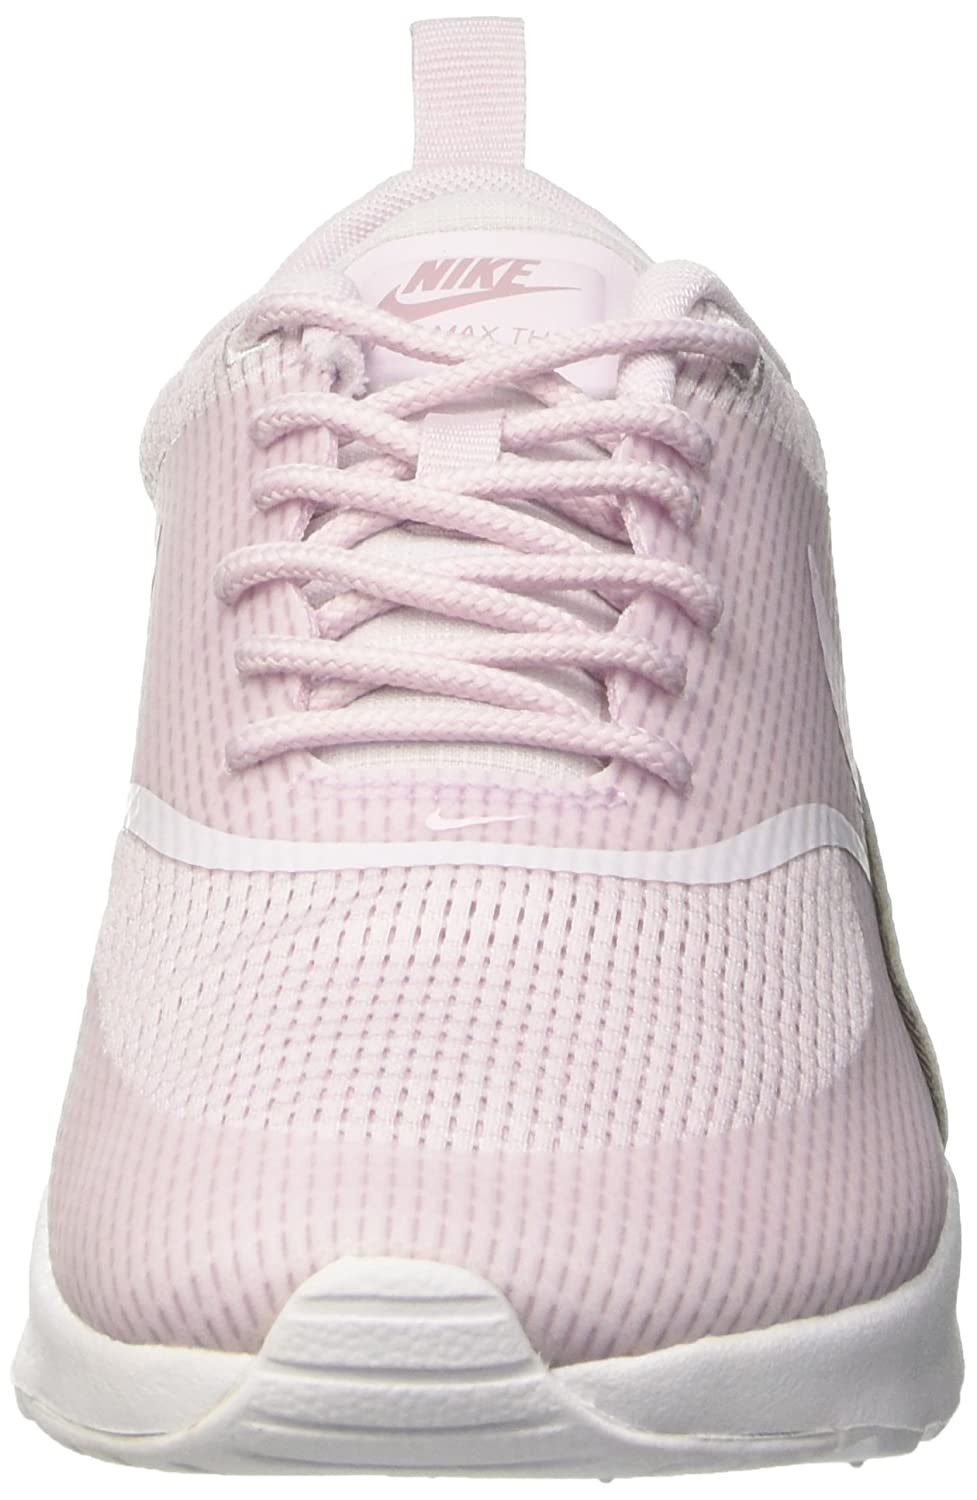 reputable site 95fca 5dcab Nike Womens W Air Max Thea Txt Gymnastics Shoes, Viola Bleached Lilac, 6.5  UK Amazon.co.uk Shoes  Bags